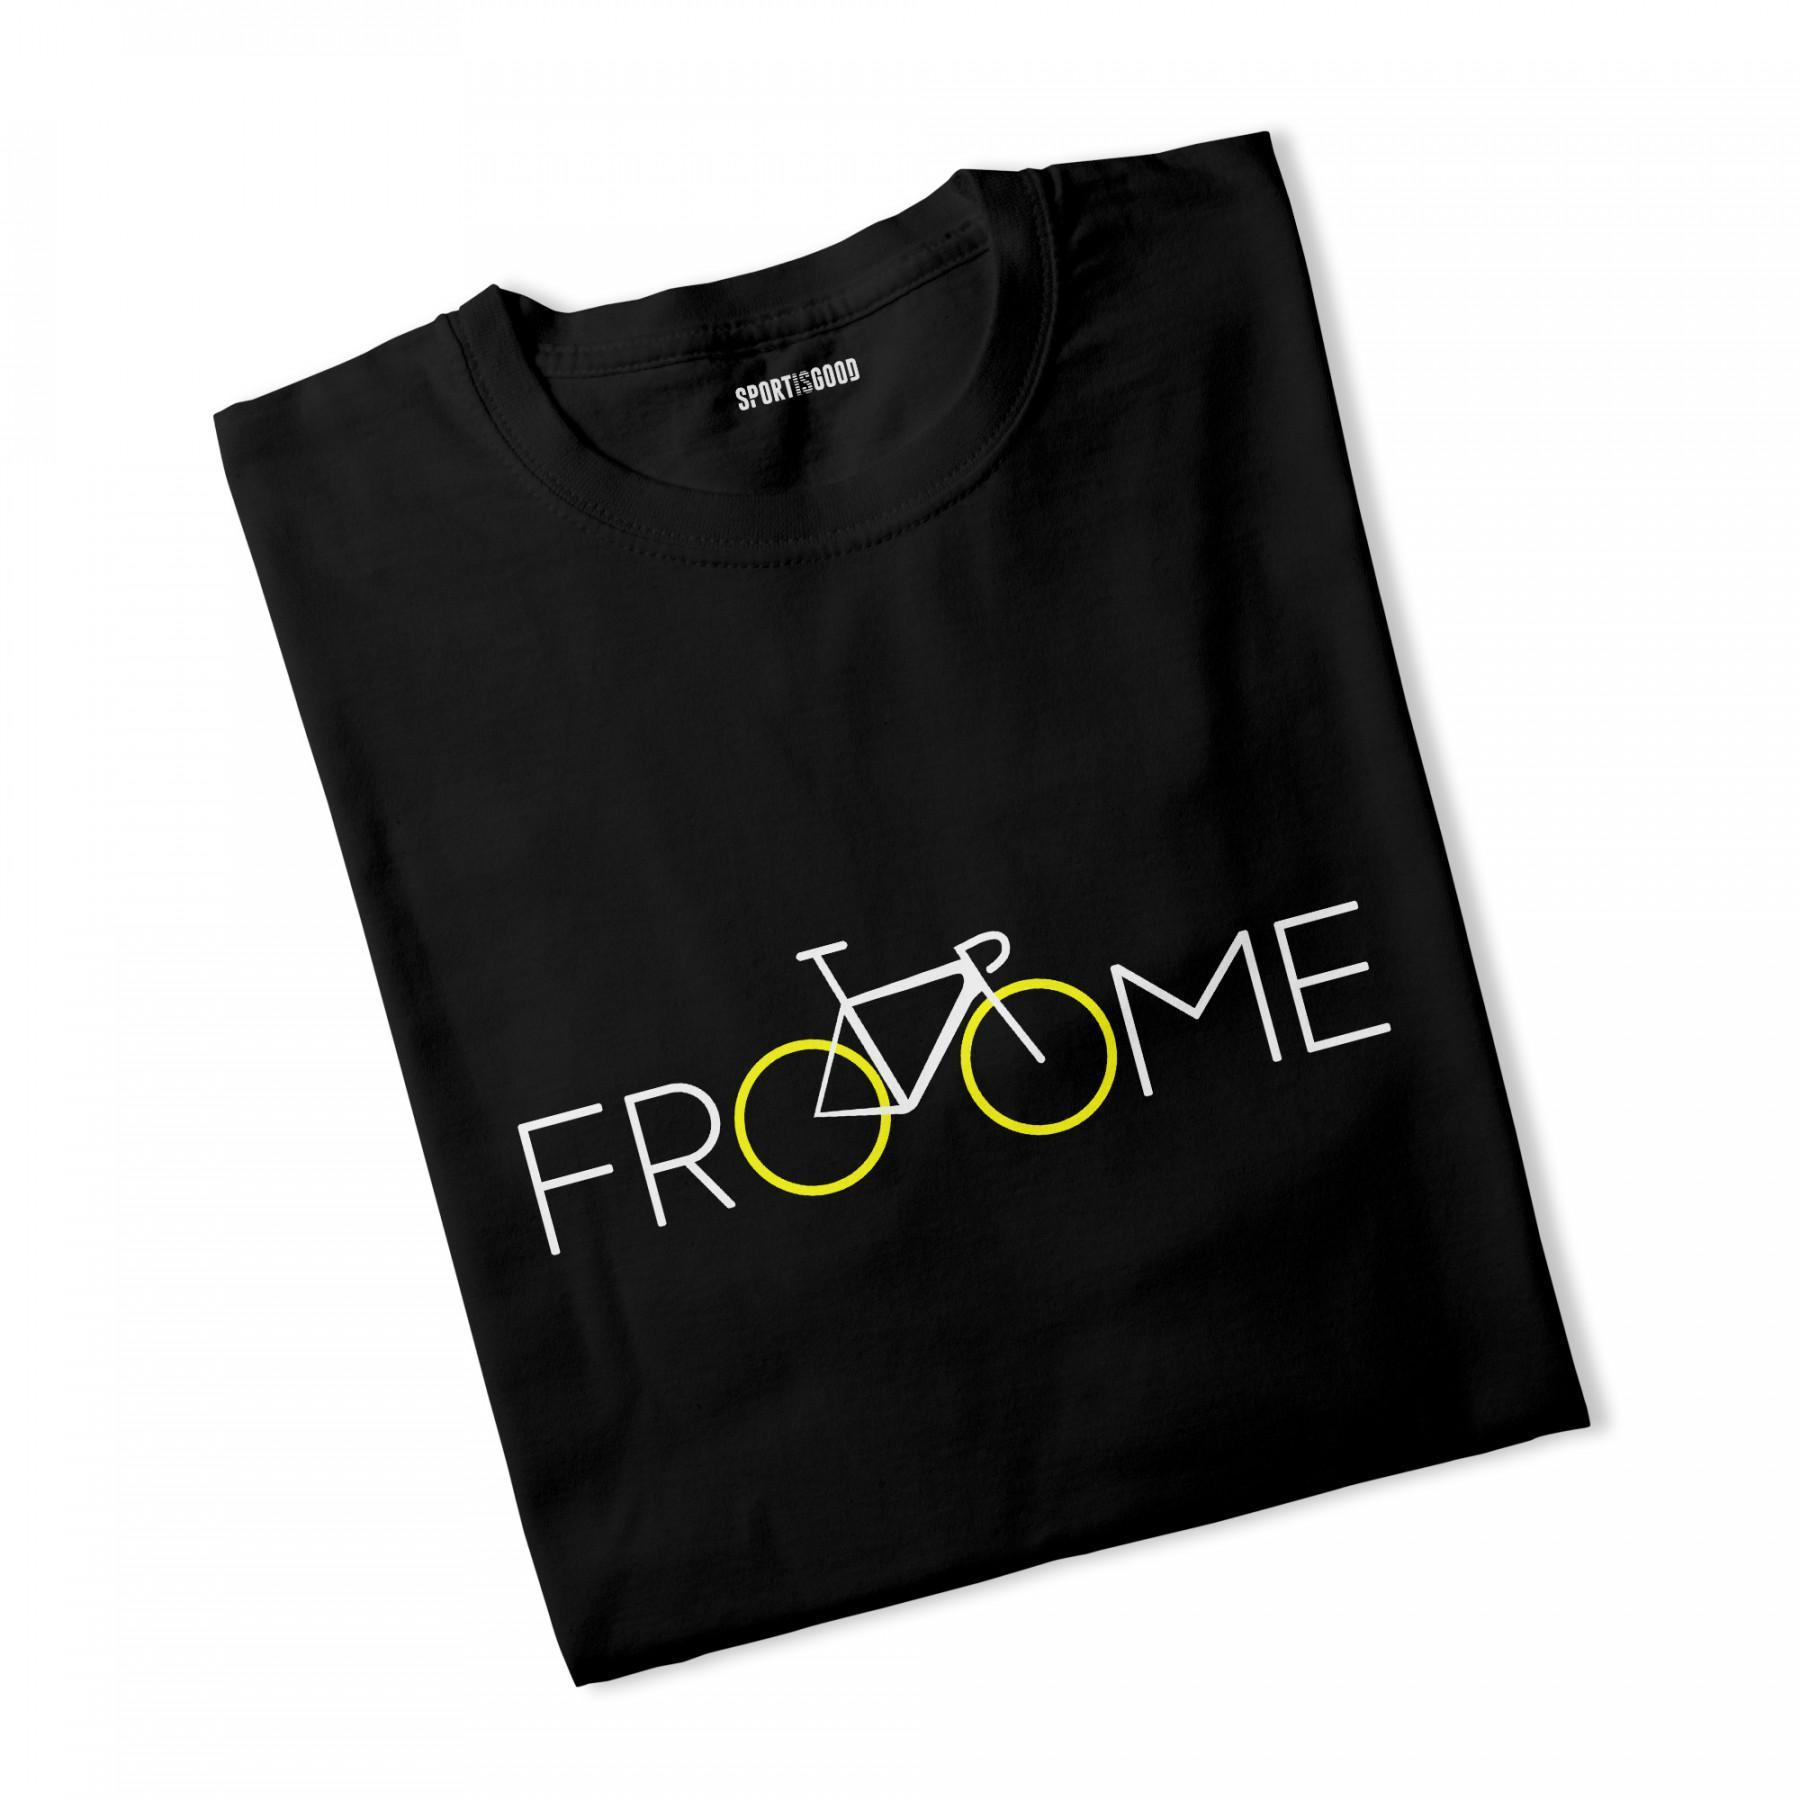 T-shirt Froome